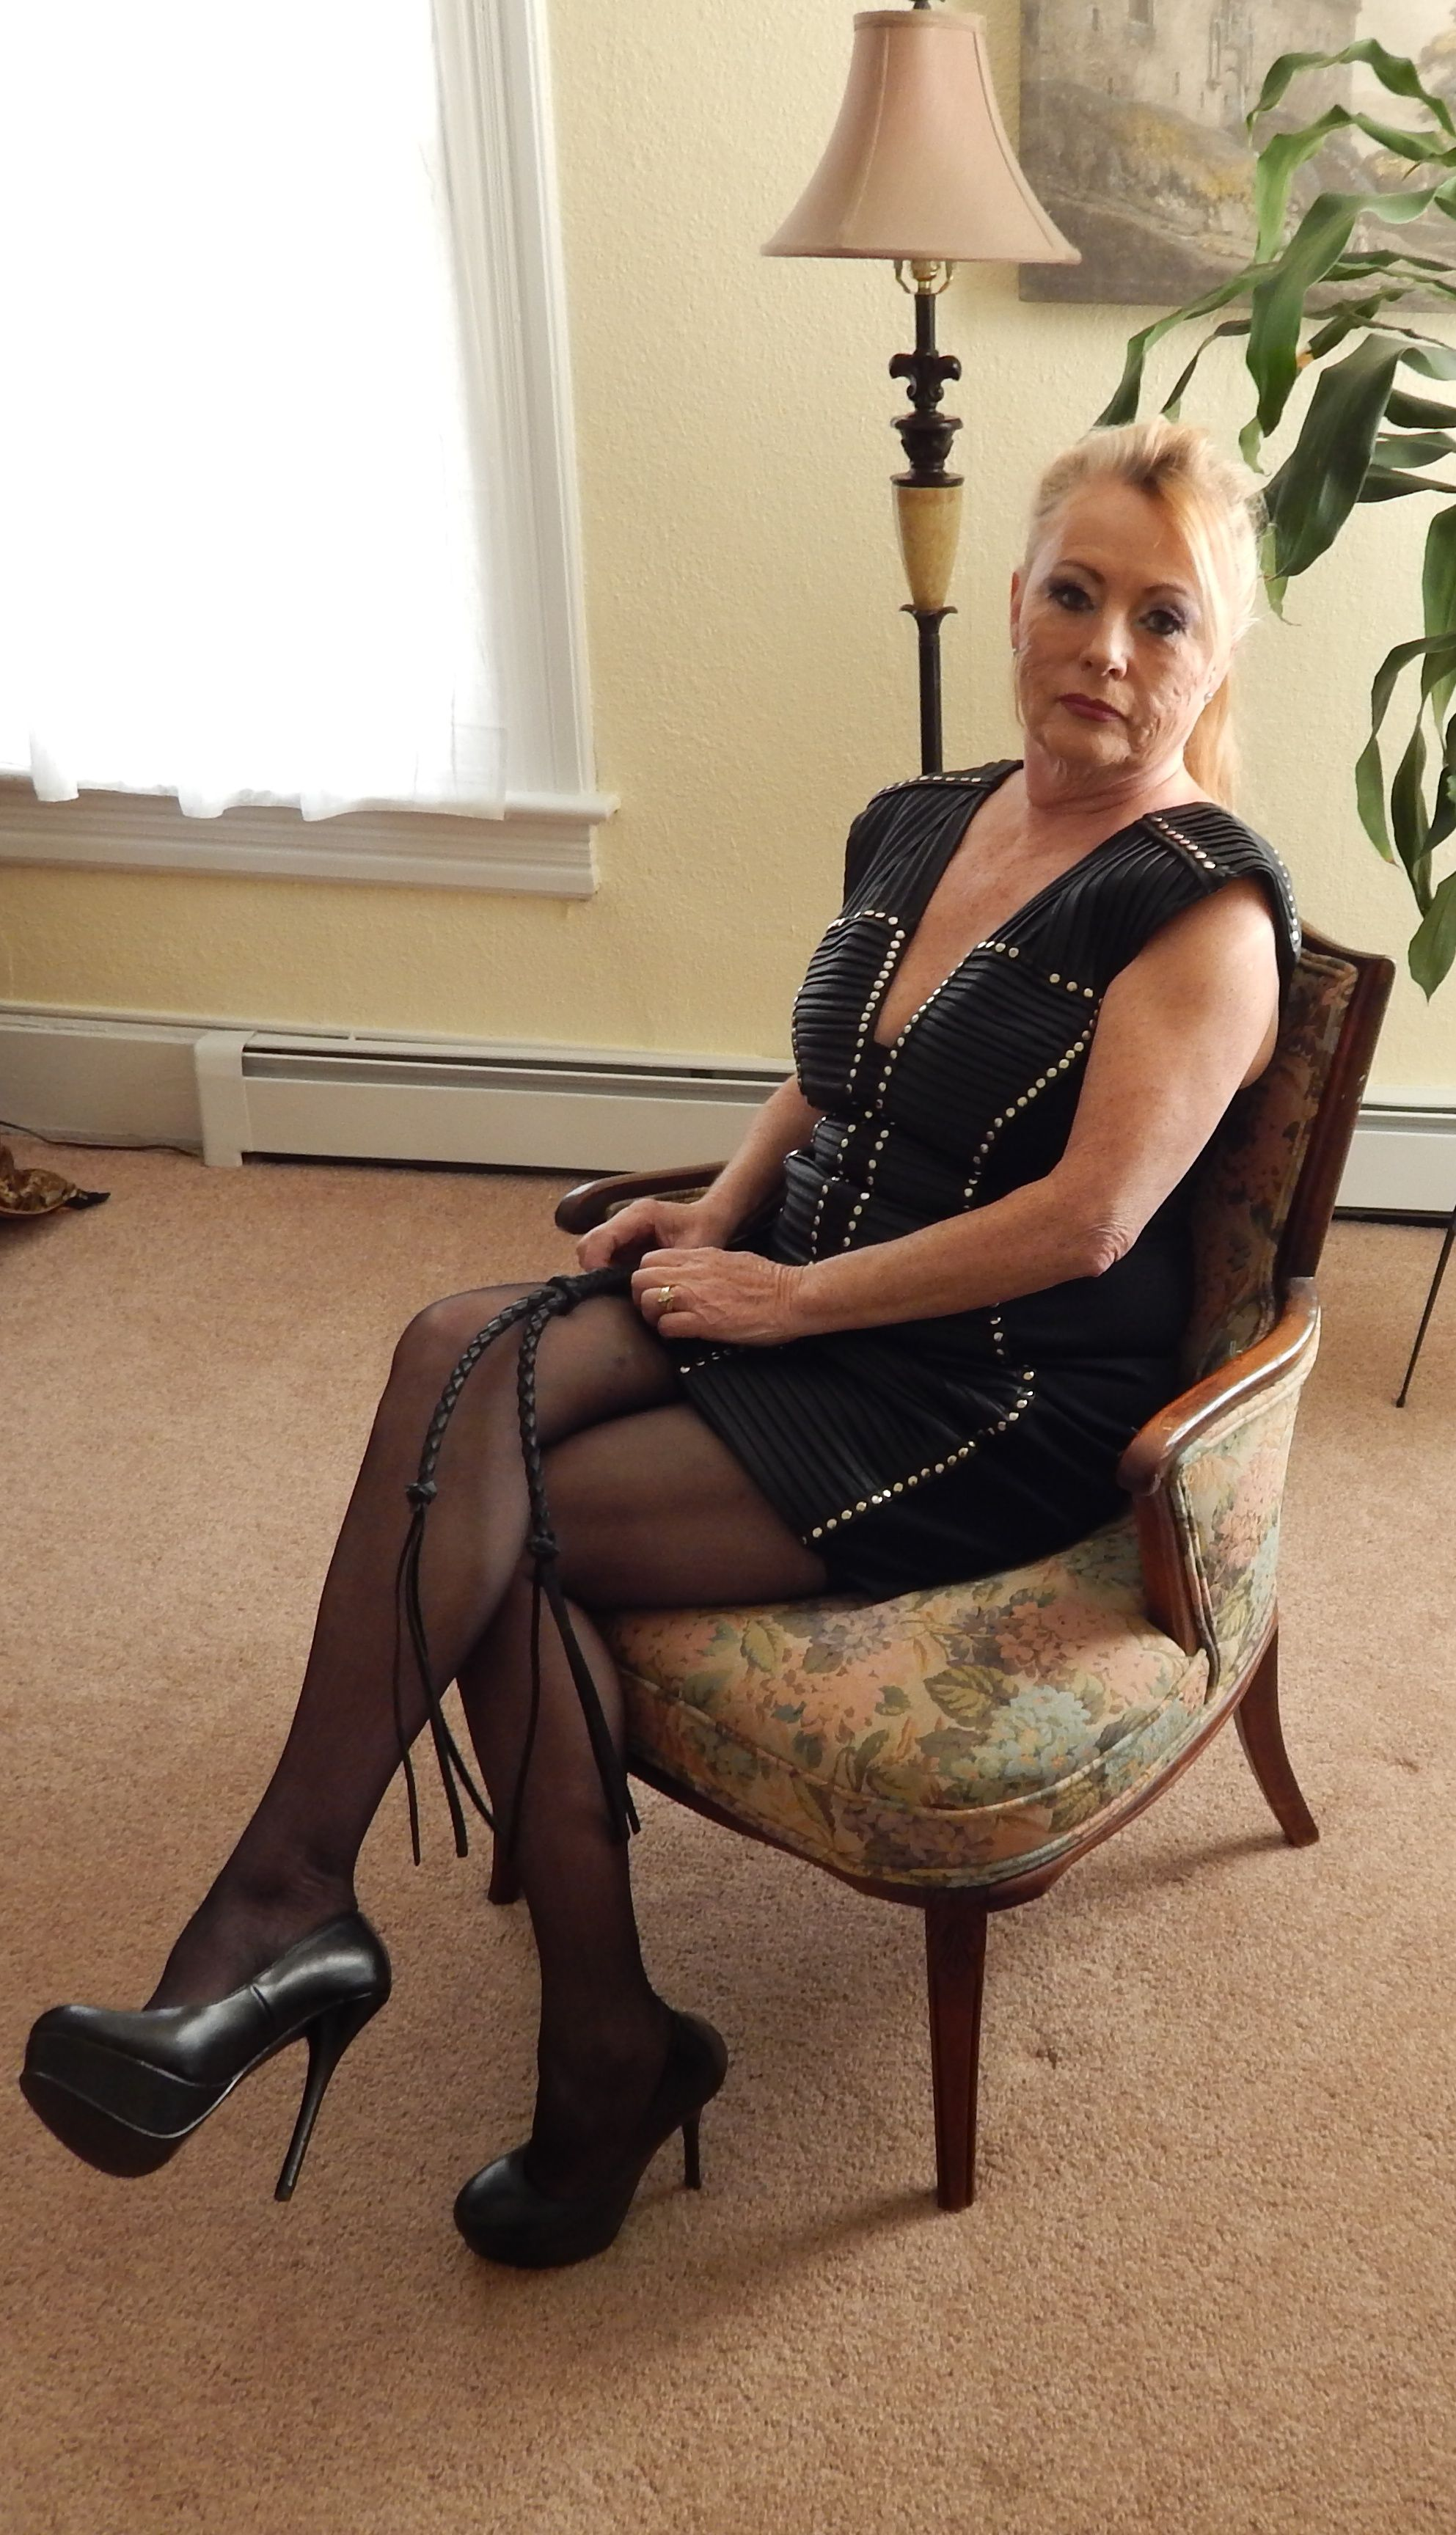 pantyhose spiked heels pictures